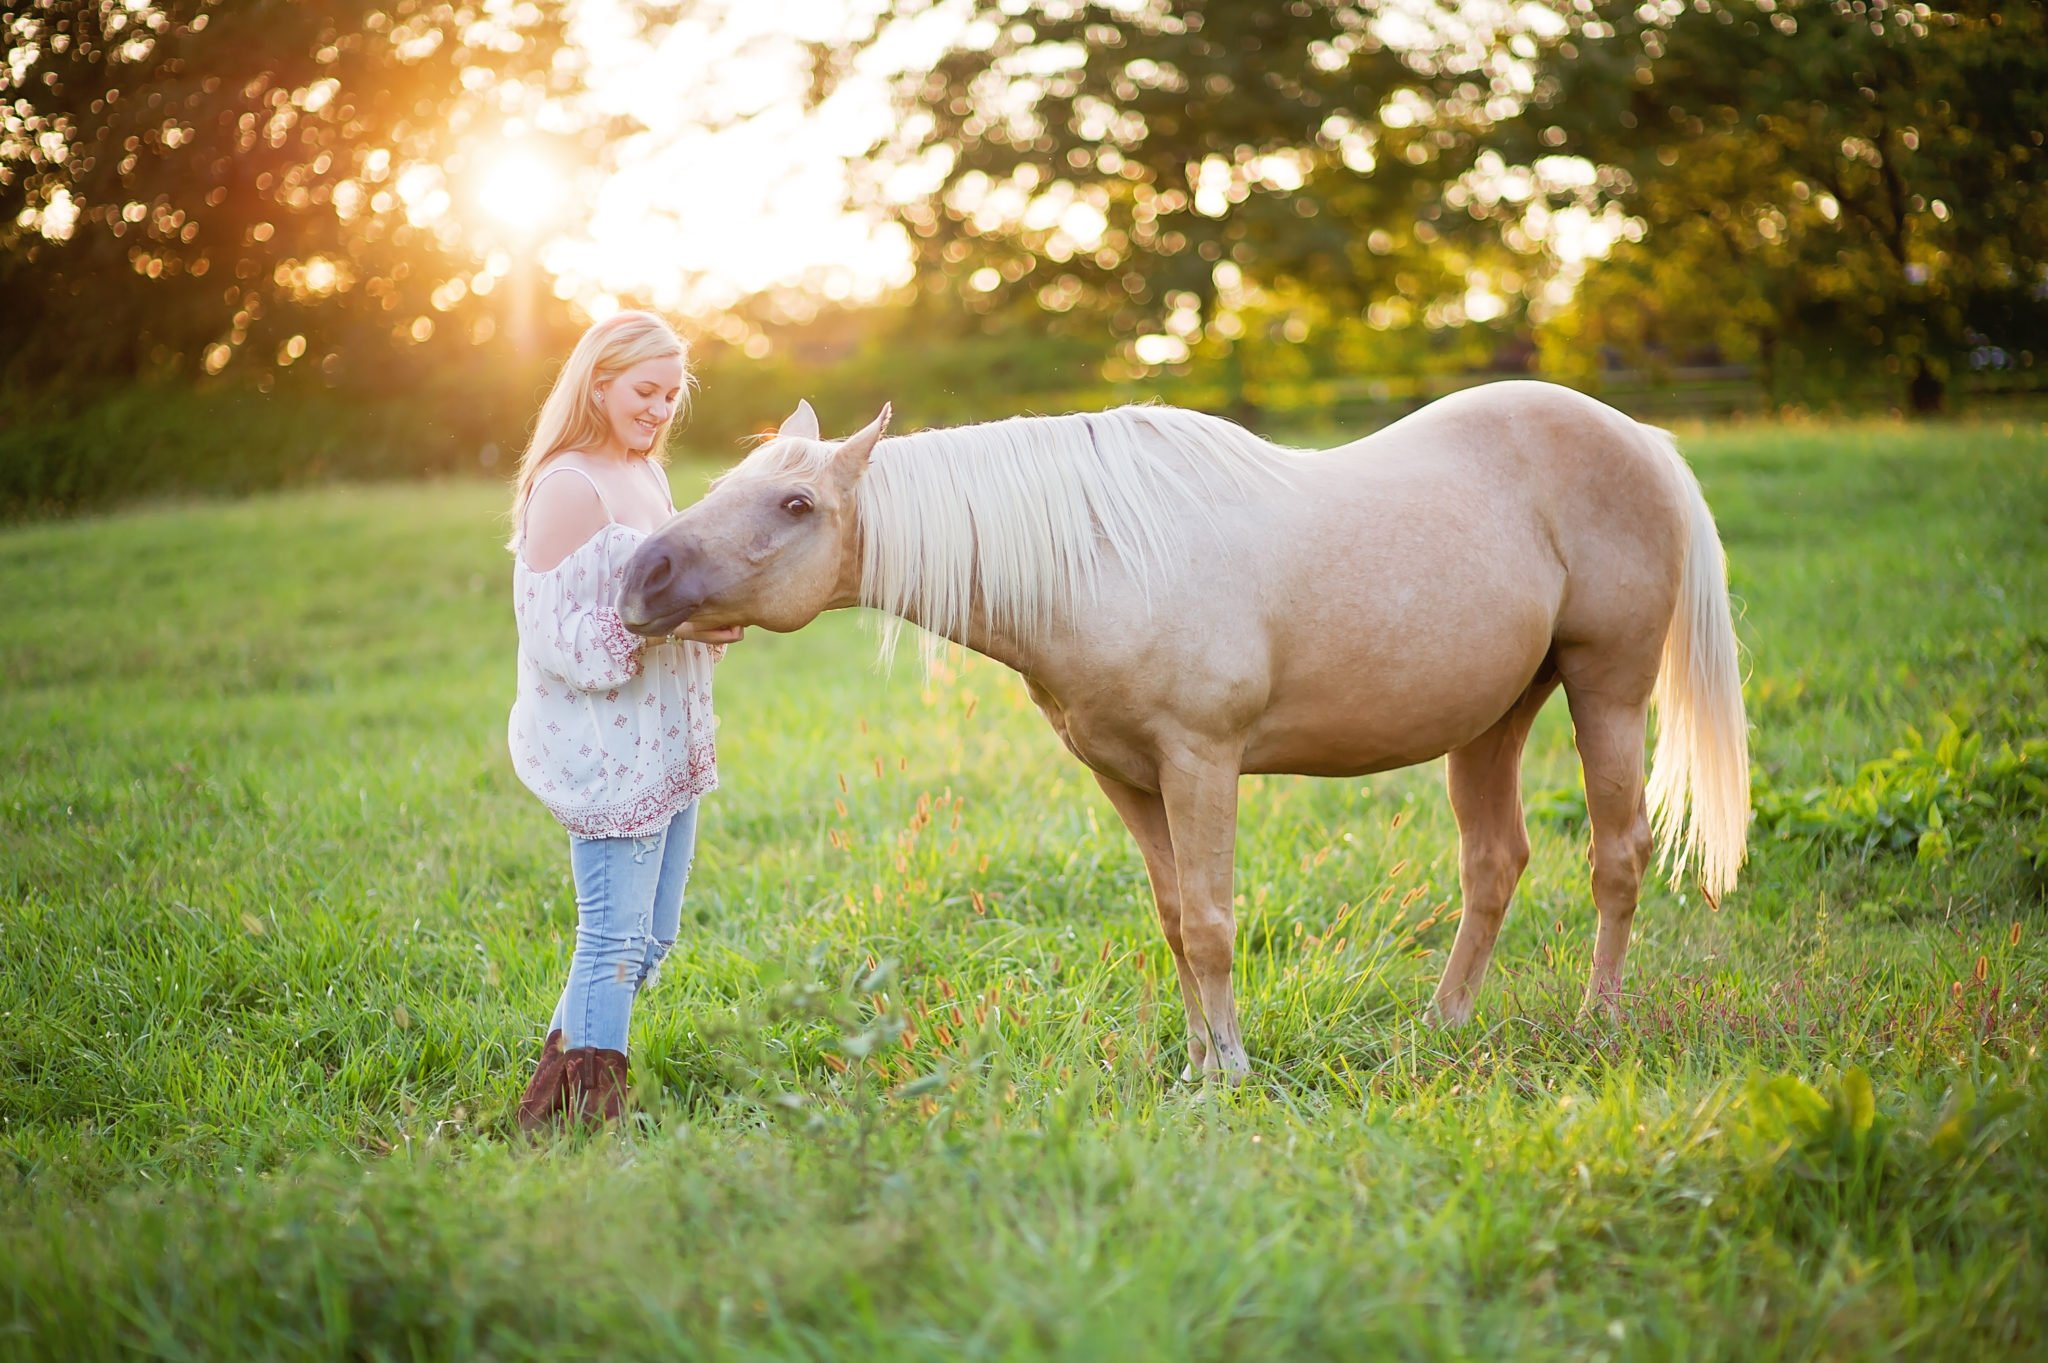 young woman with a horse in a field at sunset